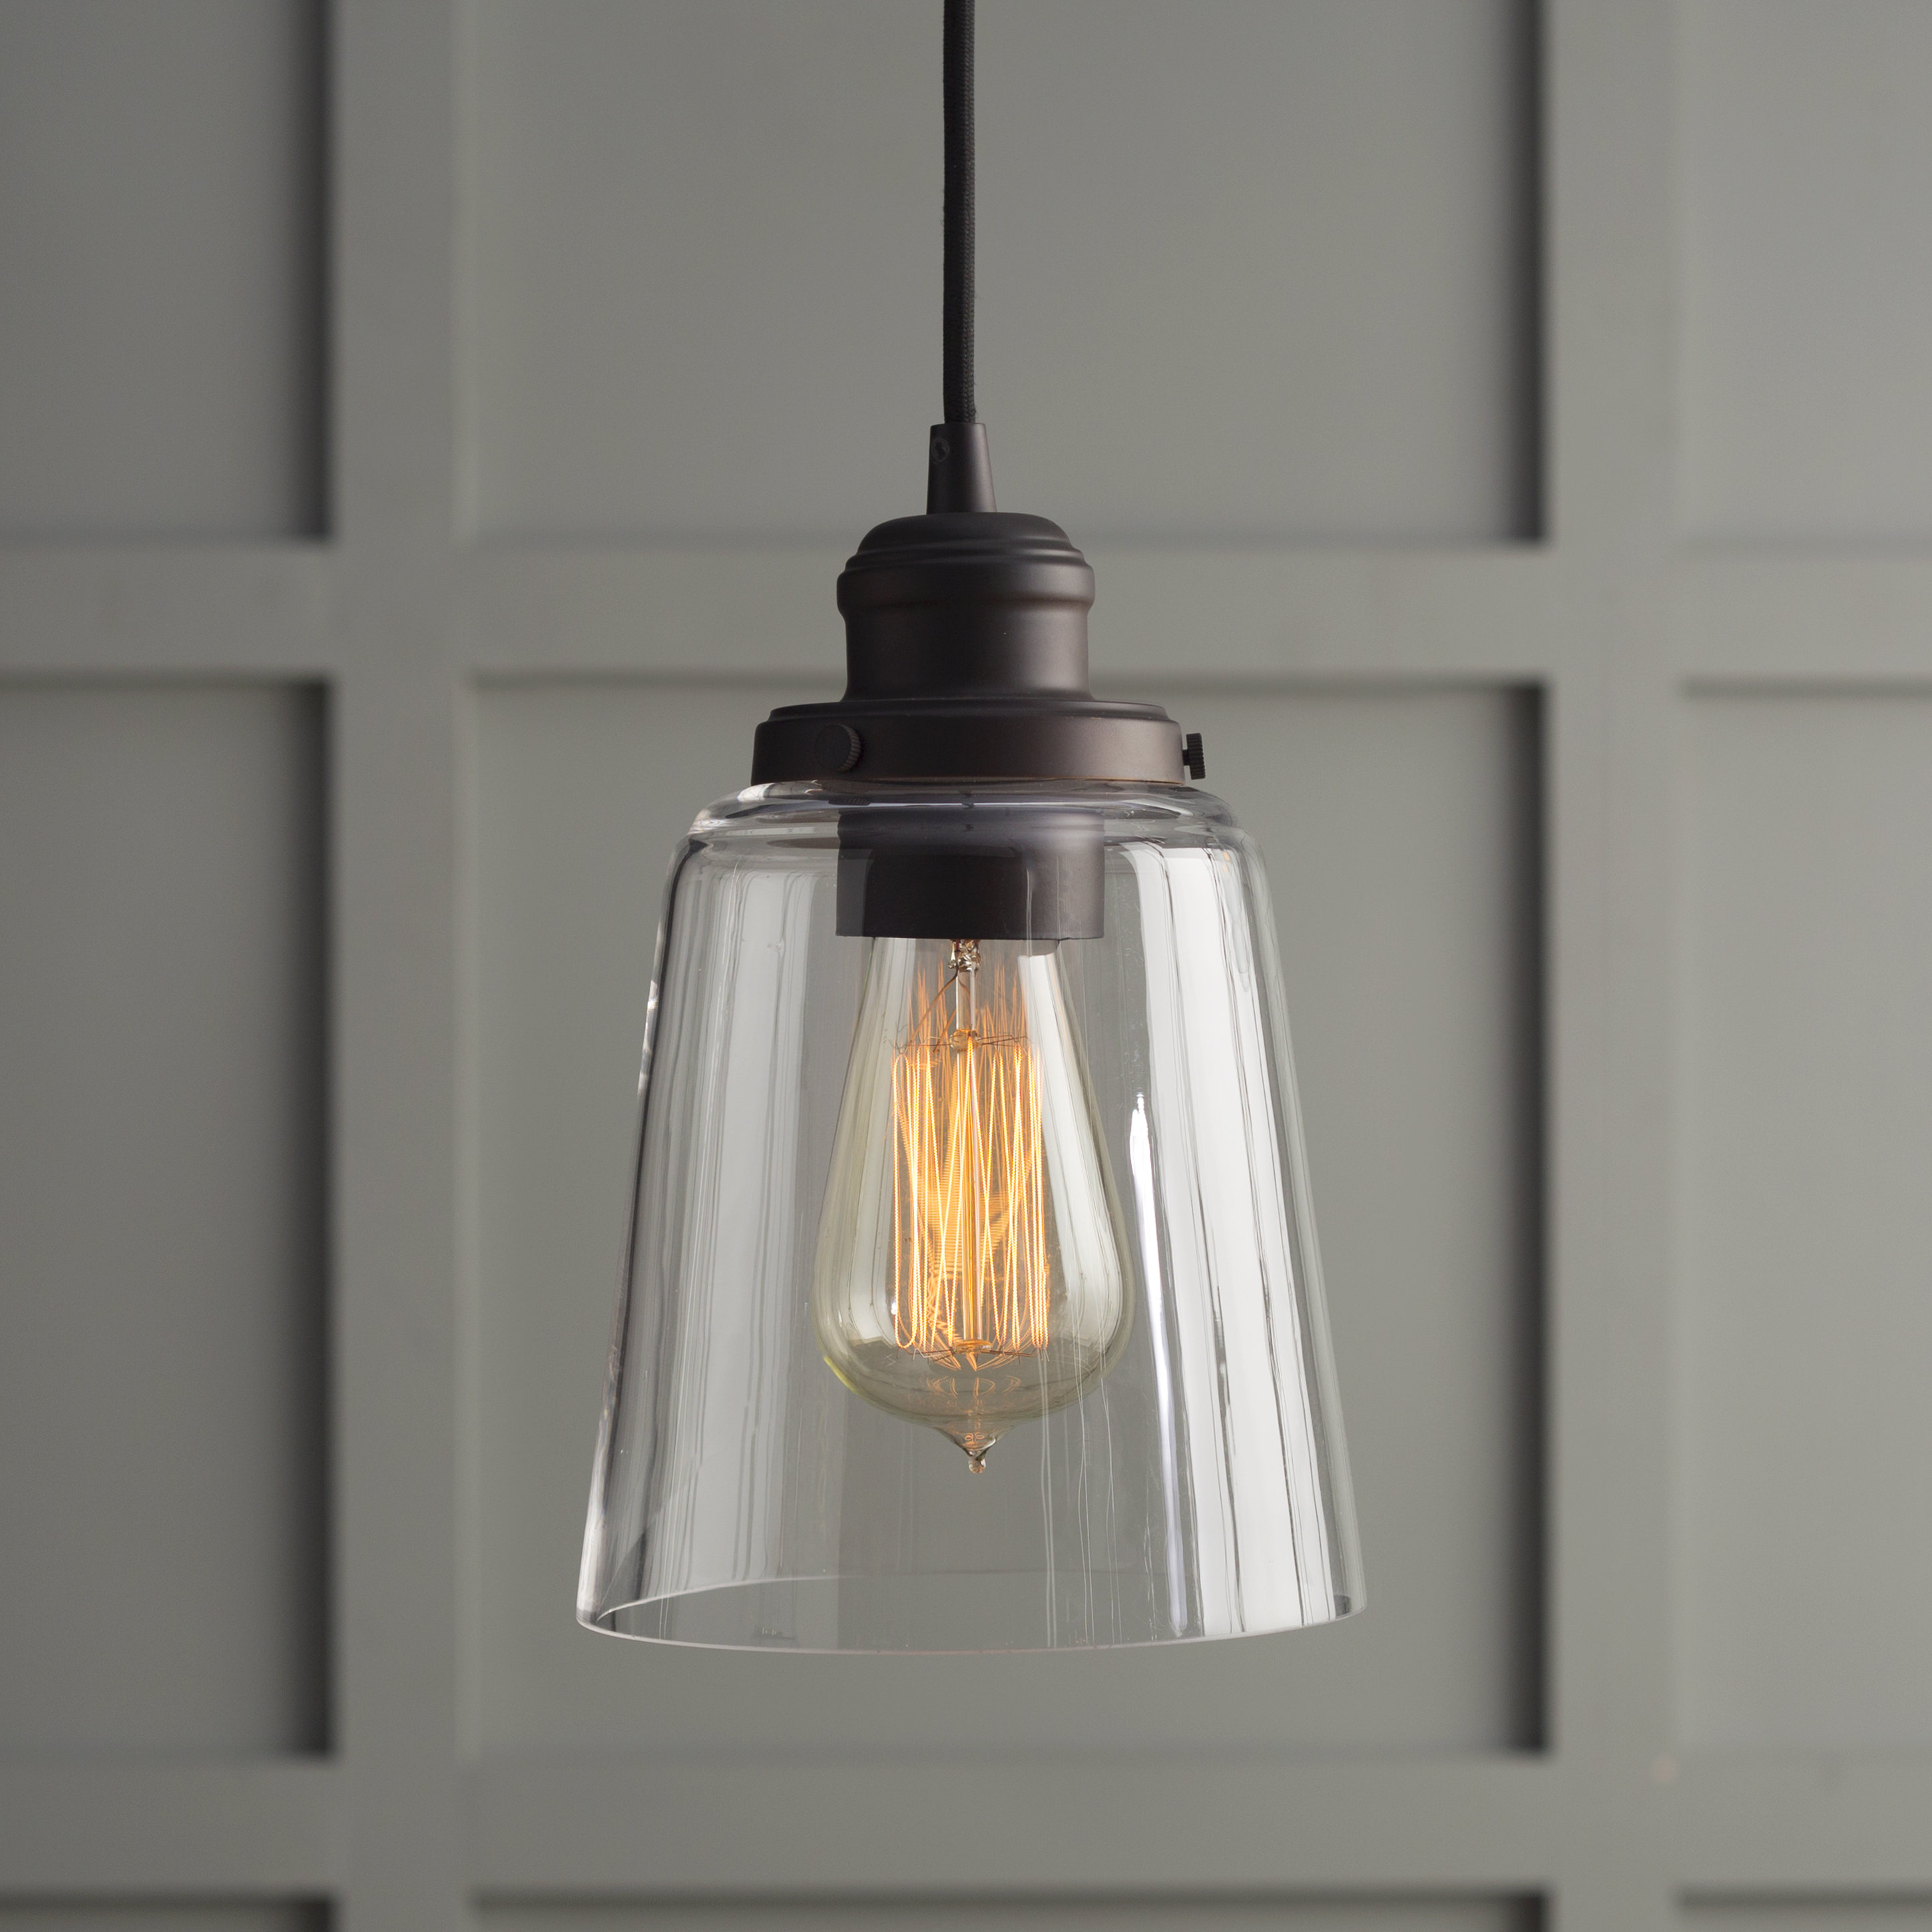 1 Light Single Bell Pendant Throughout Moyer 1 Light Single Cylinder Pendants (View 4 of 30)